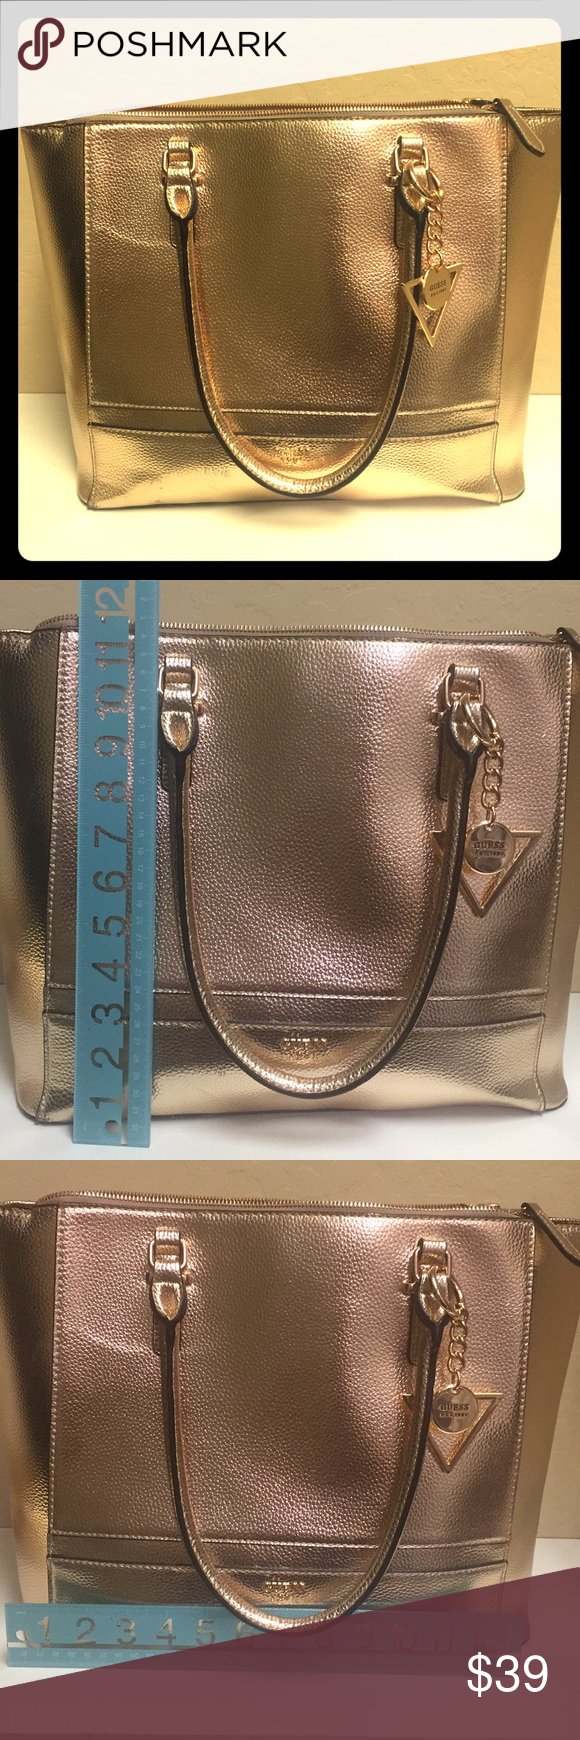 Guess satchel in beautiful metallic rose gold Almost perfect Guess bag or  purse. Large enough to hold a small laptop. Purchased new in January 2018. 7b10275f767fe